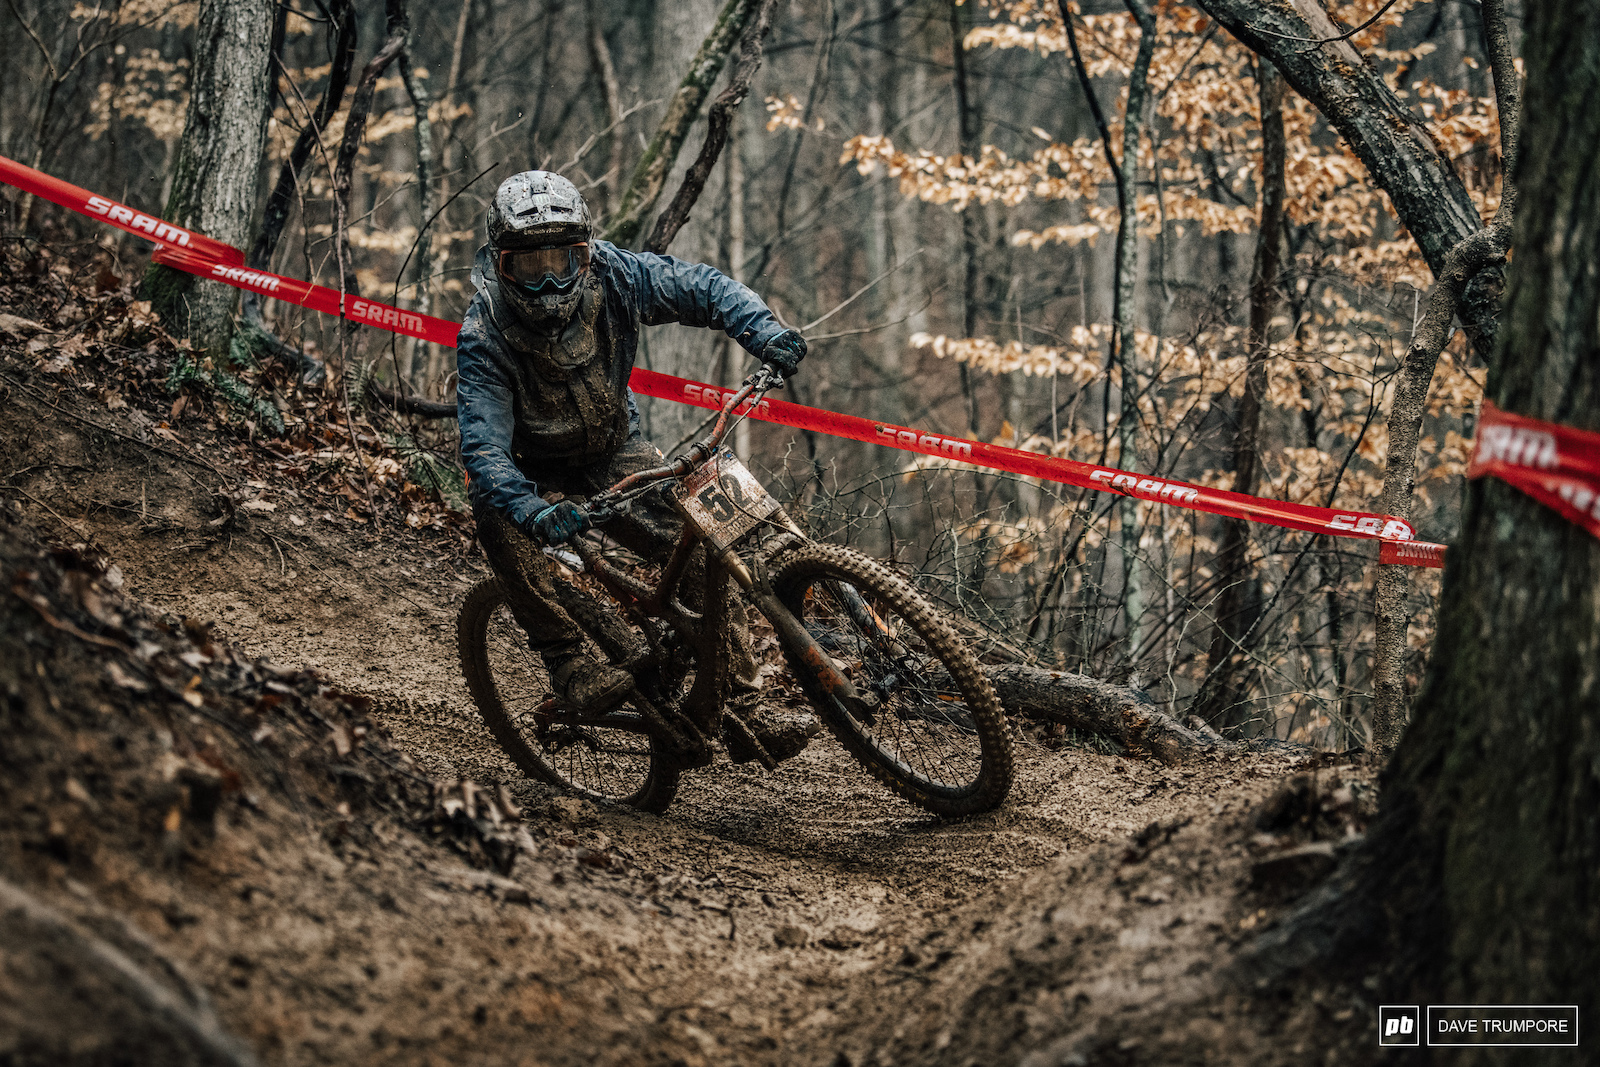 Titus Nicholson tries to keep speed through the steep and slippery switchbacks.